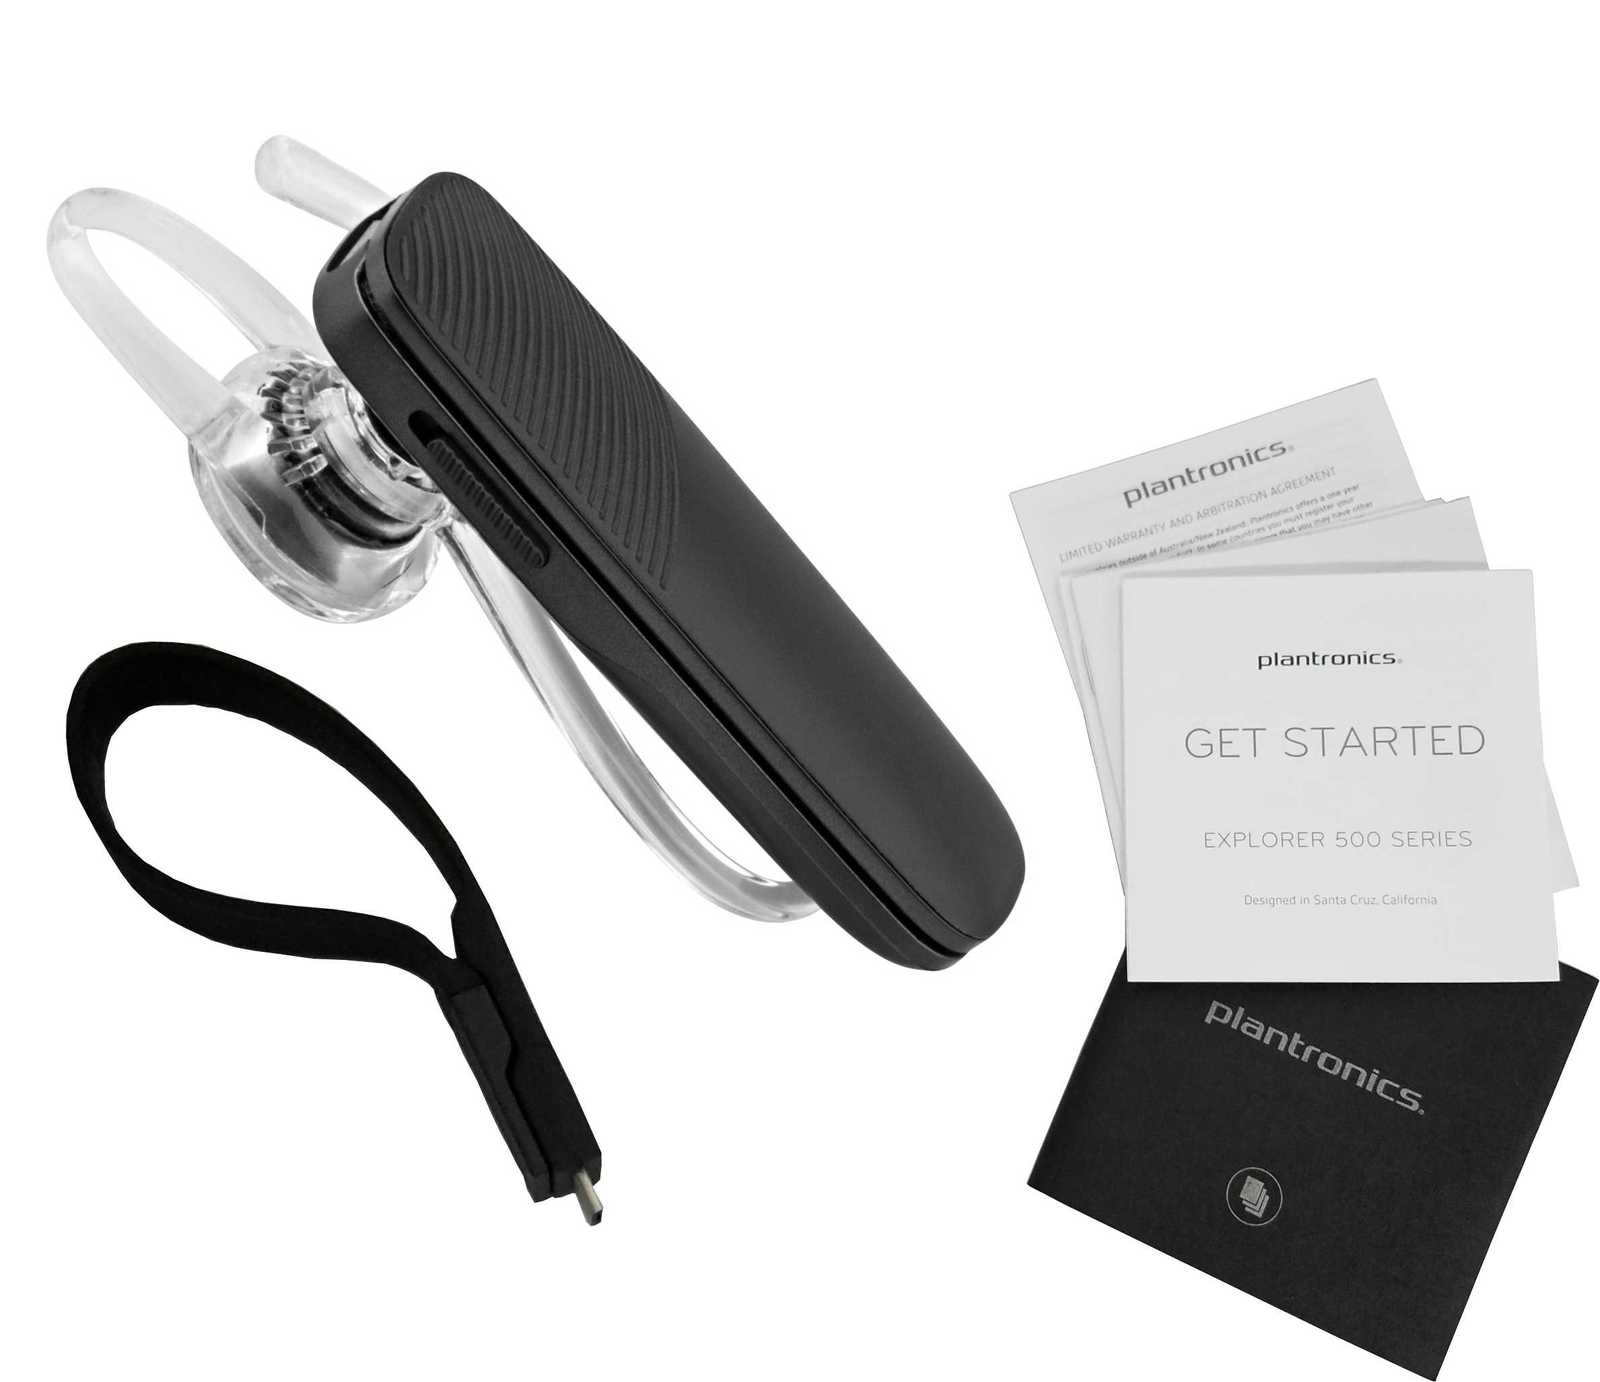 257cfc3687c 536036. 536036. Plantronics Explorer 500 Wireless HD Bluetooth Black Headset  ...